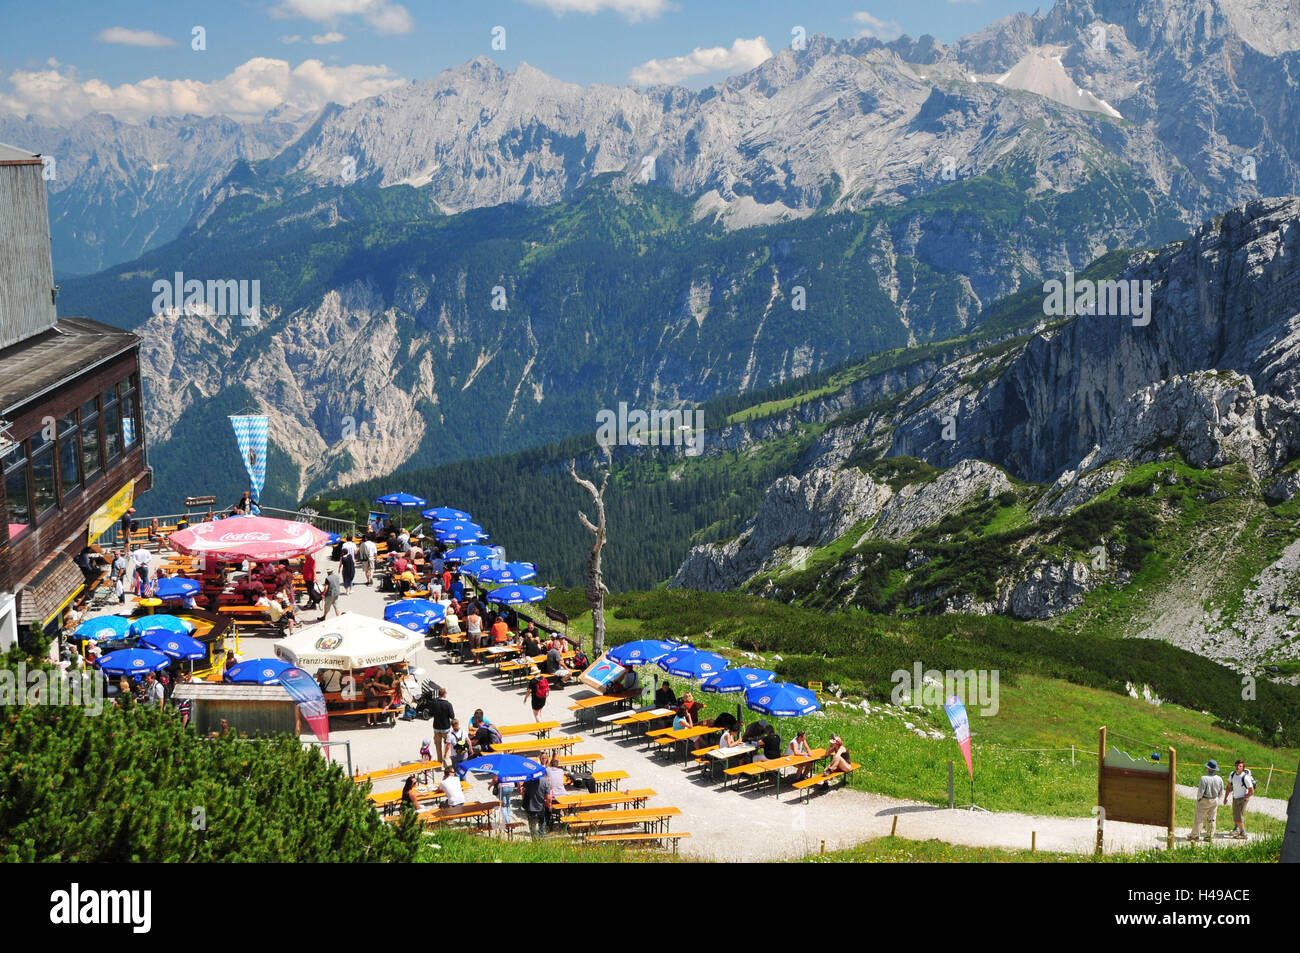 deutschland bayern garmisch partenkirchen alpspitze bergrestaurant terrasse tourist. Black Bedroom Furniture Sets. Home Design Ideas